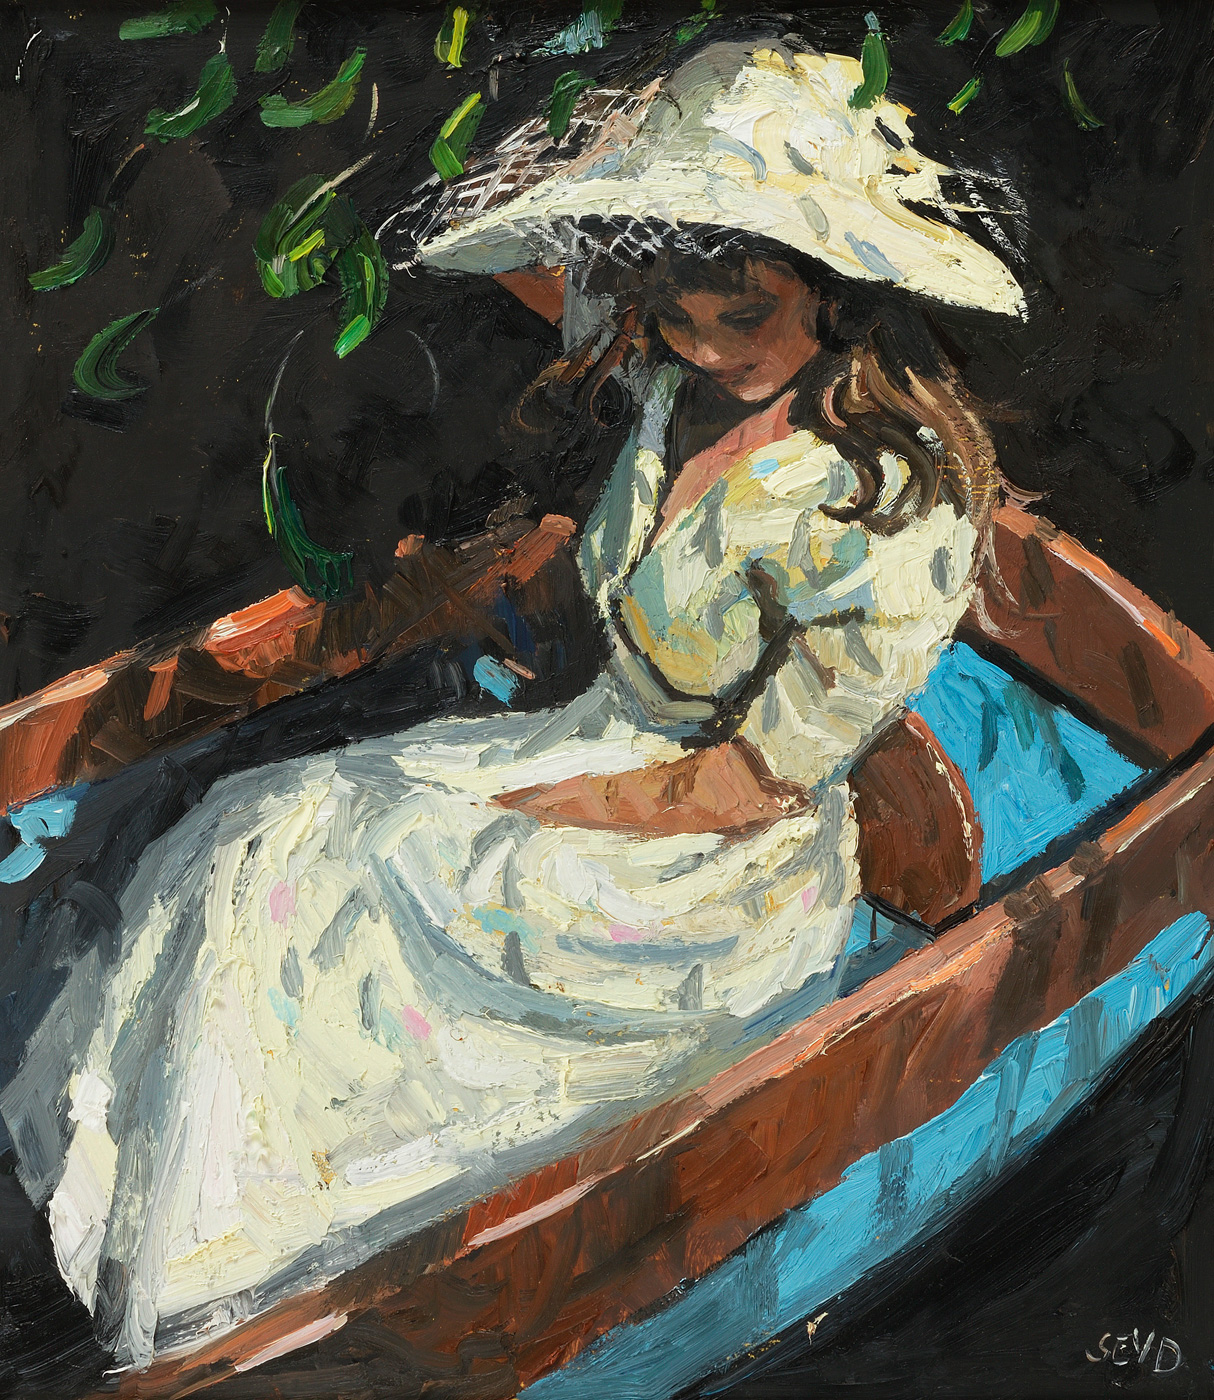 In the Punt-Fishing by  Sherree Valentine-Daines